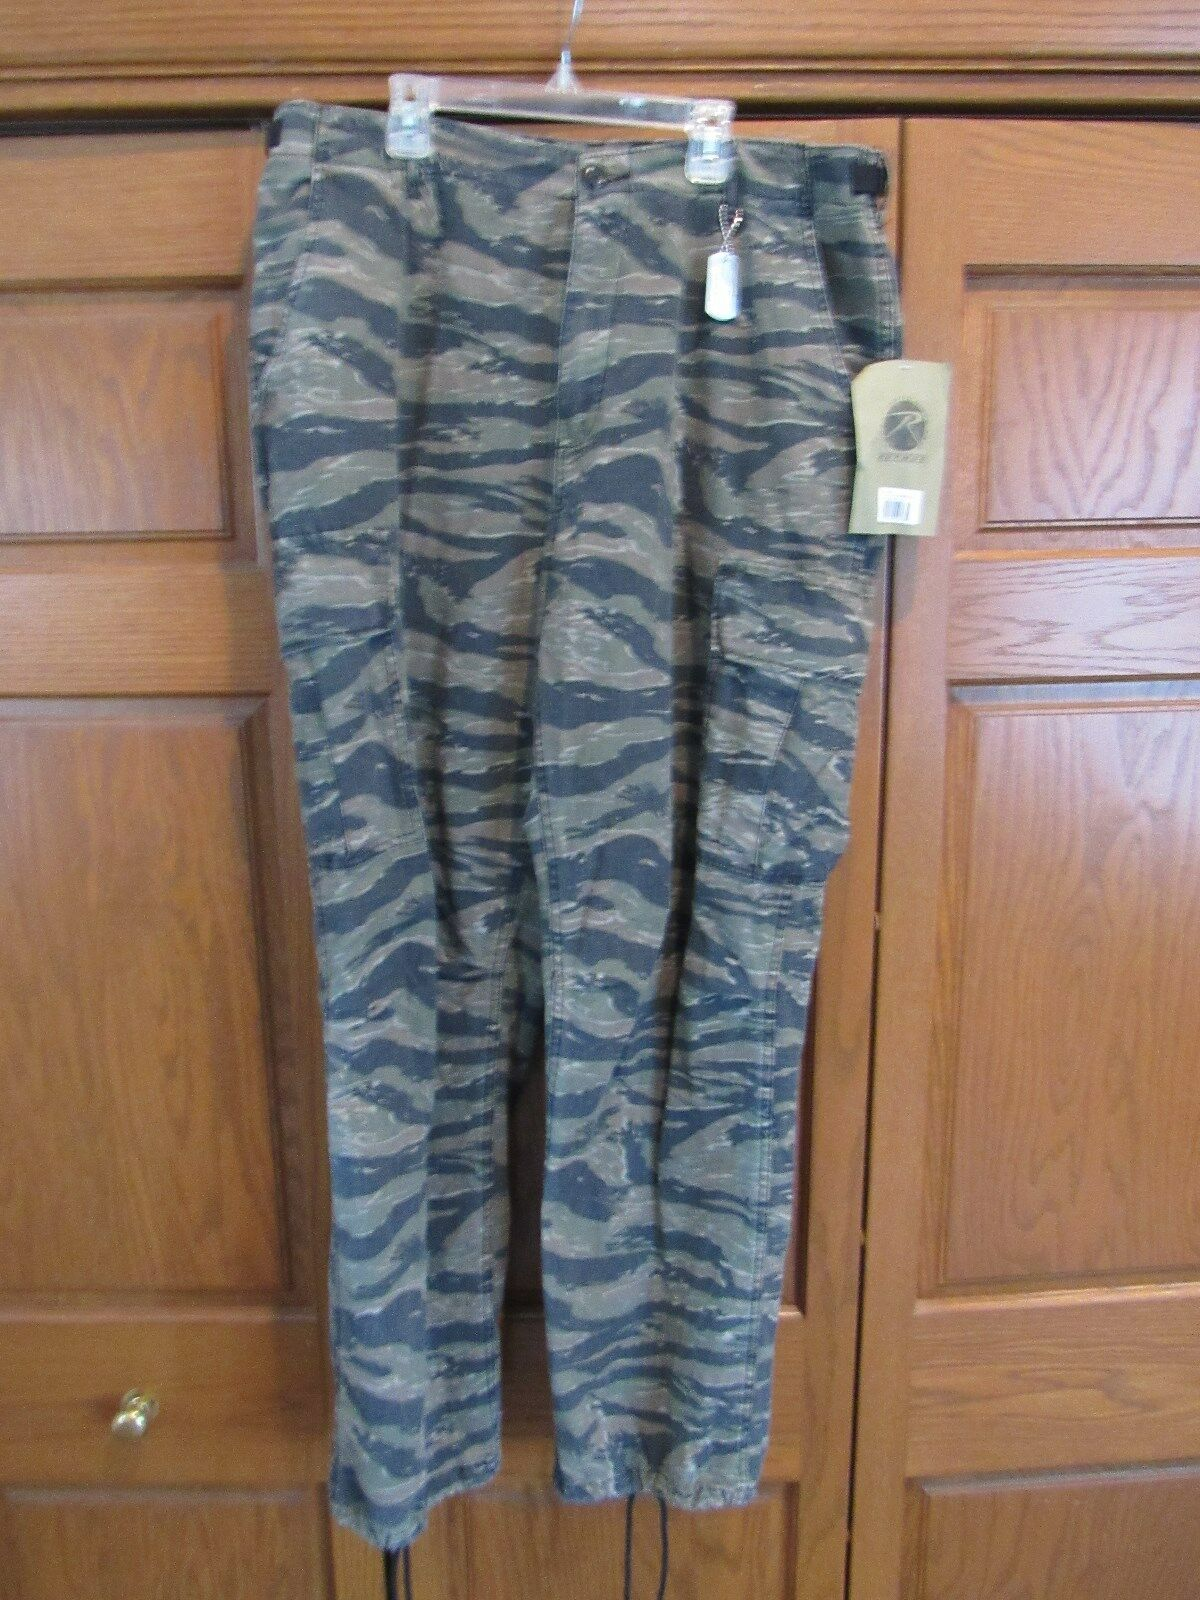 NWT Men's Army Tiger stripe BDU pants & shirt Hunting Fishing sz L XL Regular